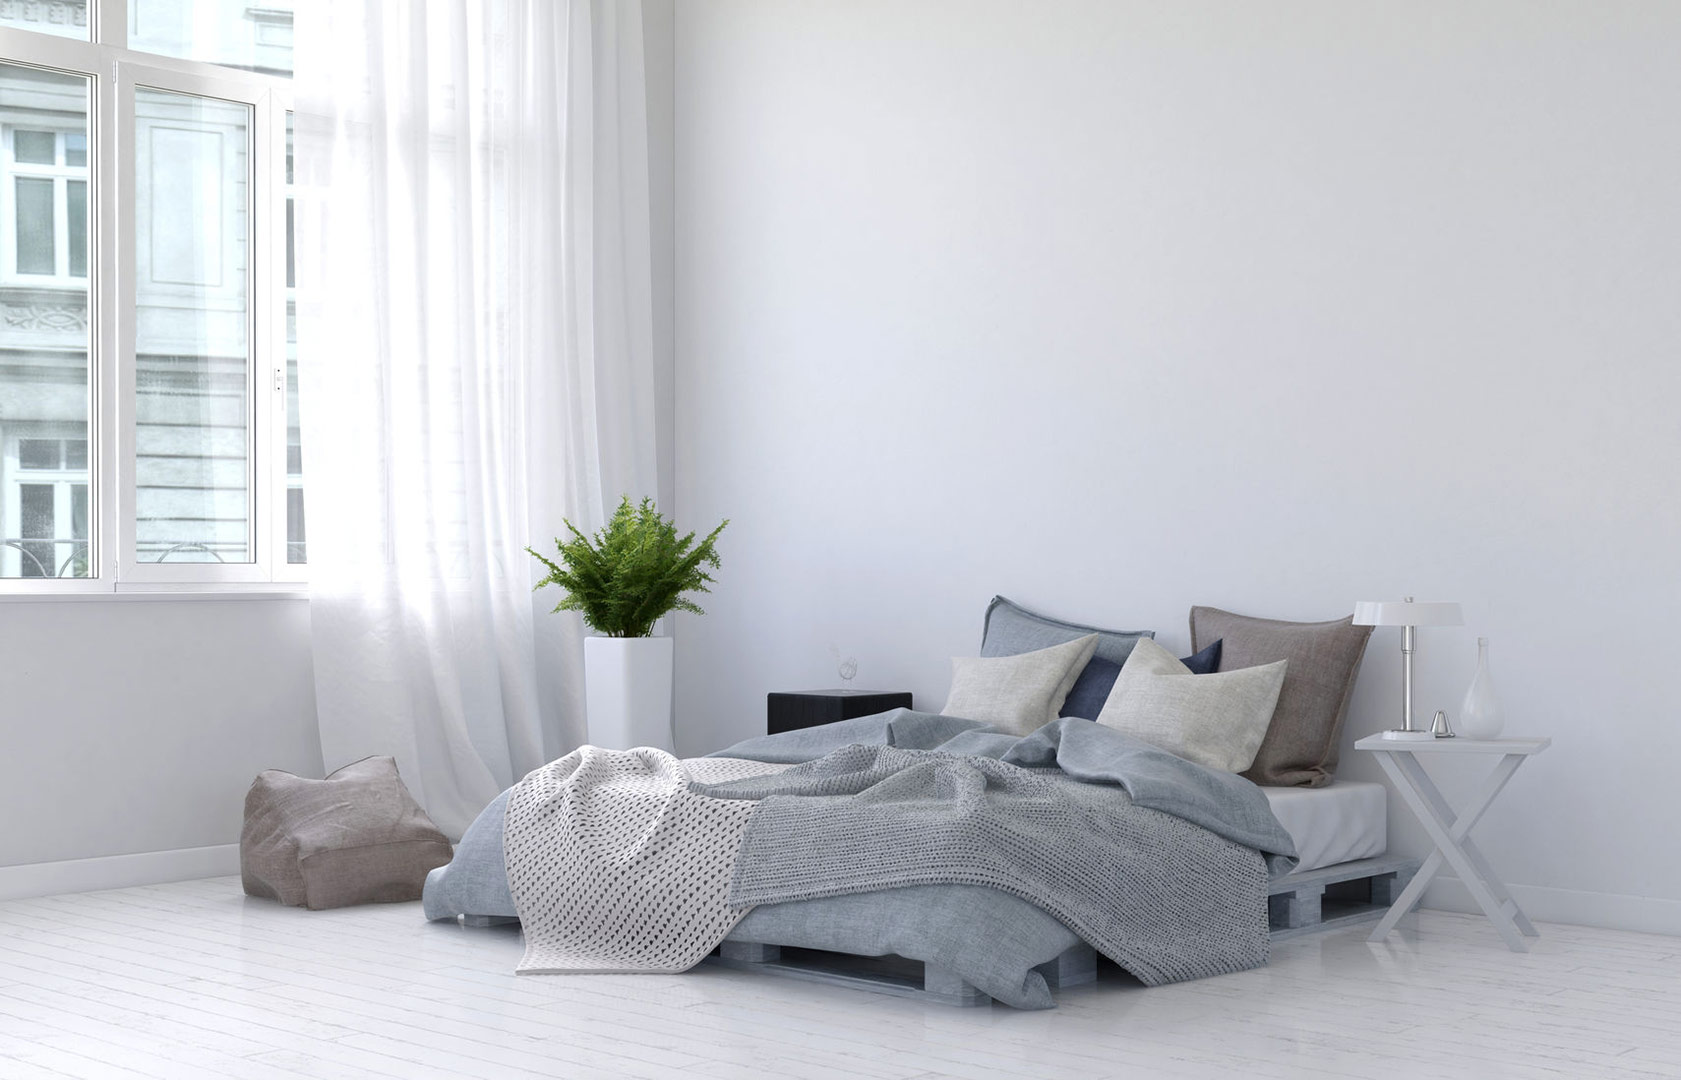 Image-of-neutral-styled-room